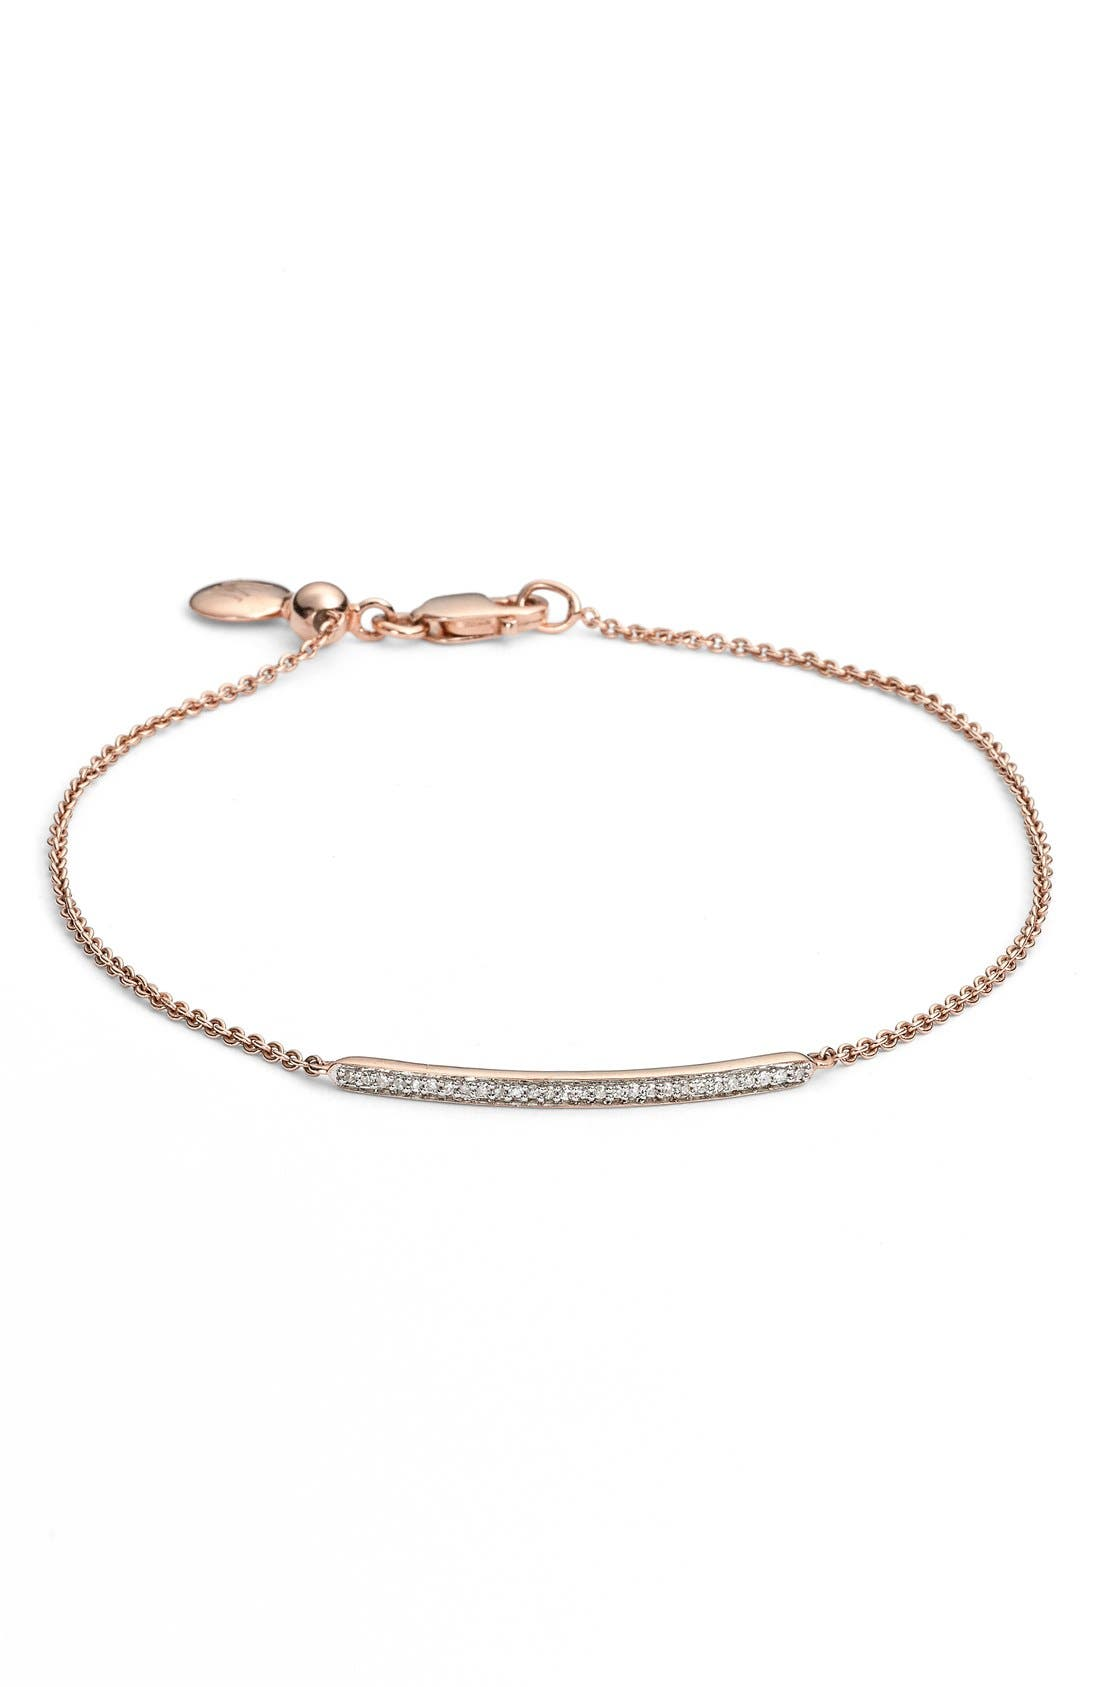 'Skinny' Diamond Bracelet,                             Main thumbnail 1, color,                             ROSE GOLD